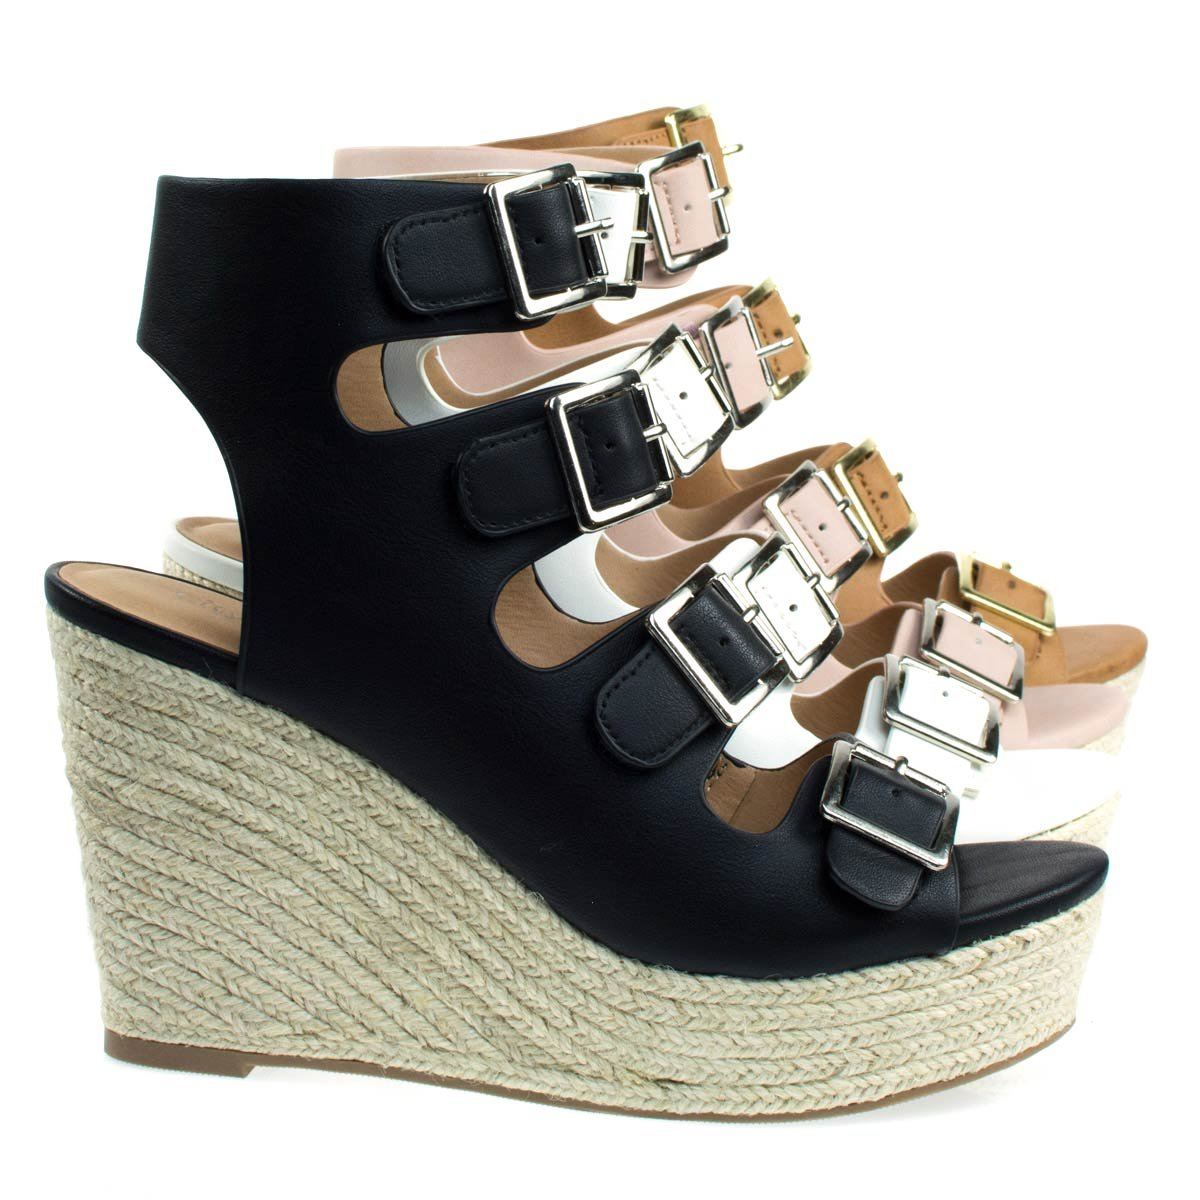 City Classified Hamza Espadrille Wedge Gladiator Buckle Sandals B071HTRM3G 7 B(M) US|Black